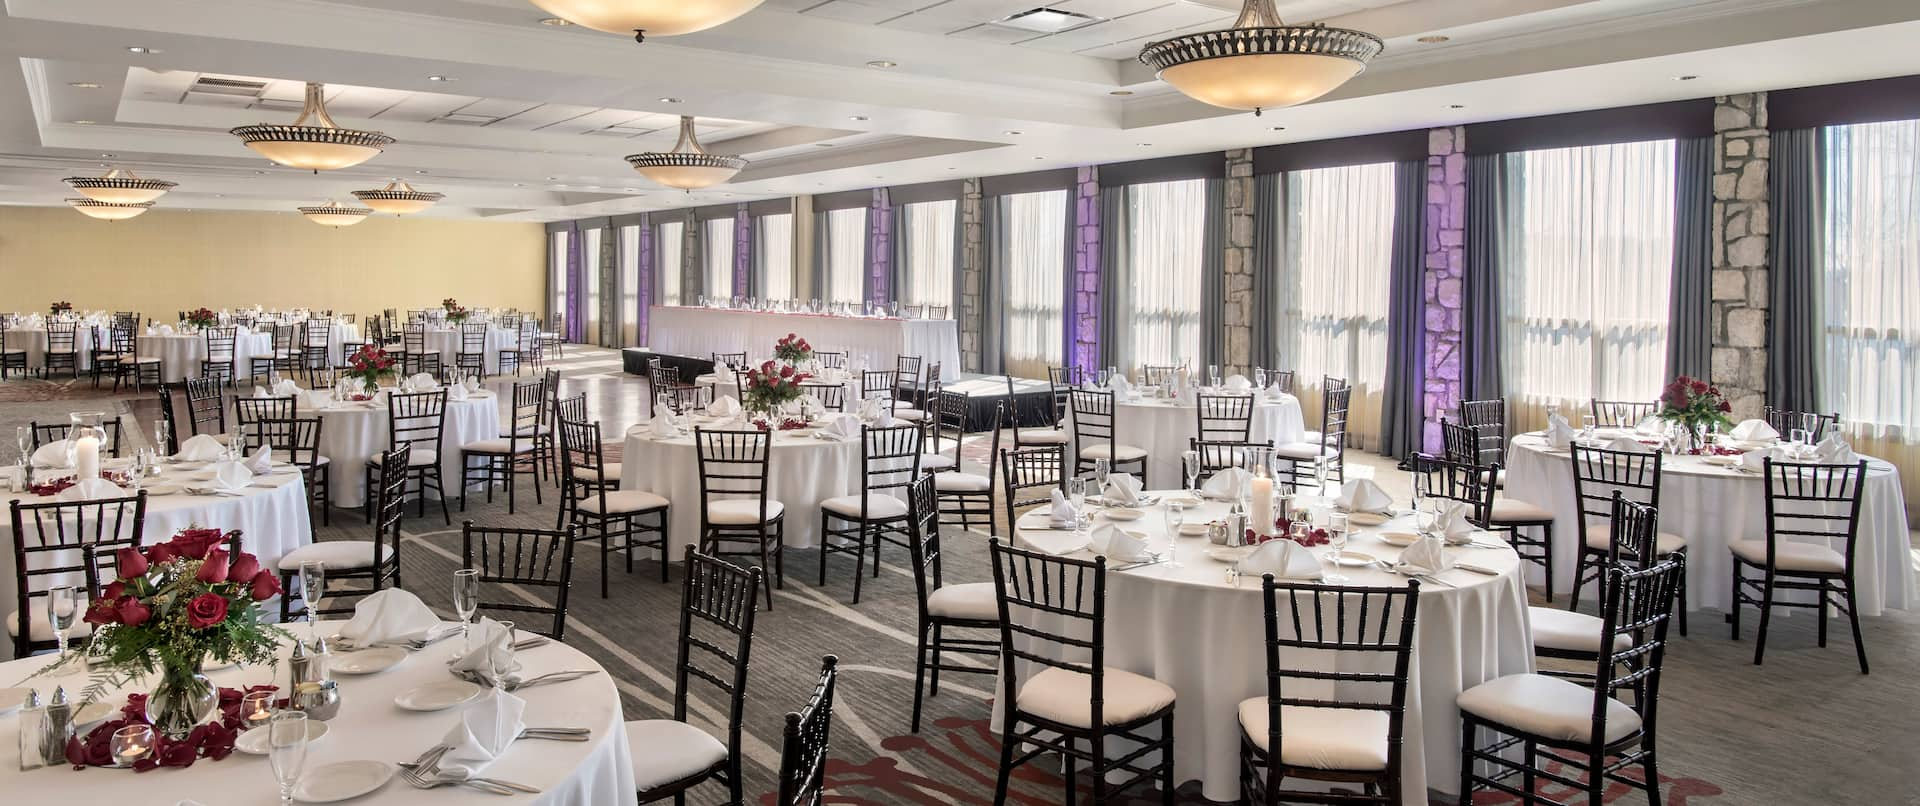 Place Settings, Red Roses, Candles, Drinking Glasses, Fan-Folded Napkins, and White Linens on Round Tables, Chairs, Head Table on Elevated Platform by Windows With Long Drapes in Ballroom Set Up for Wedding Reception